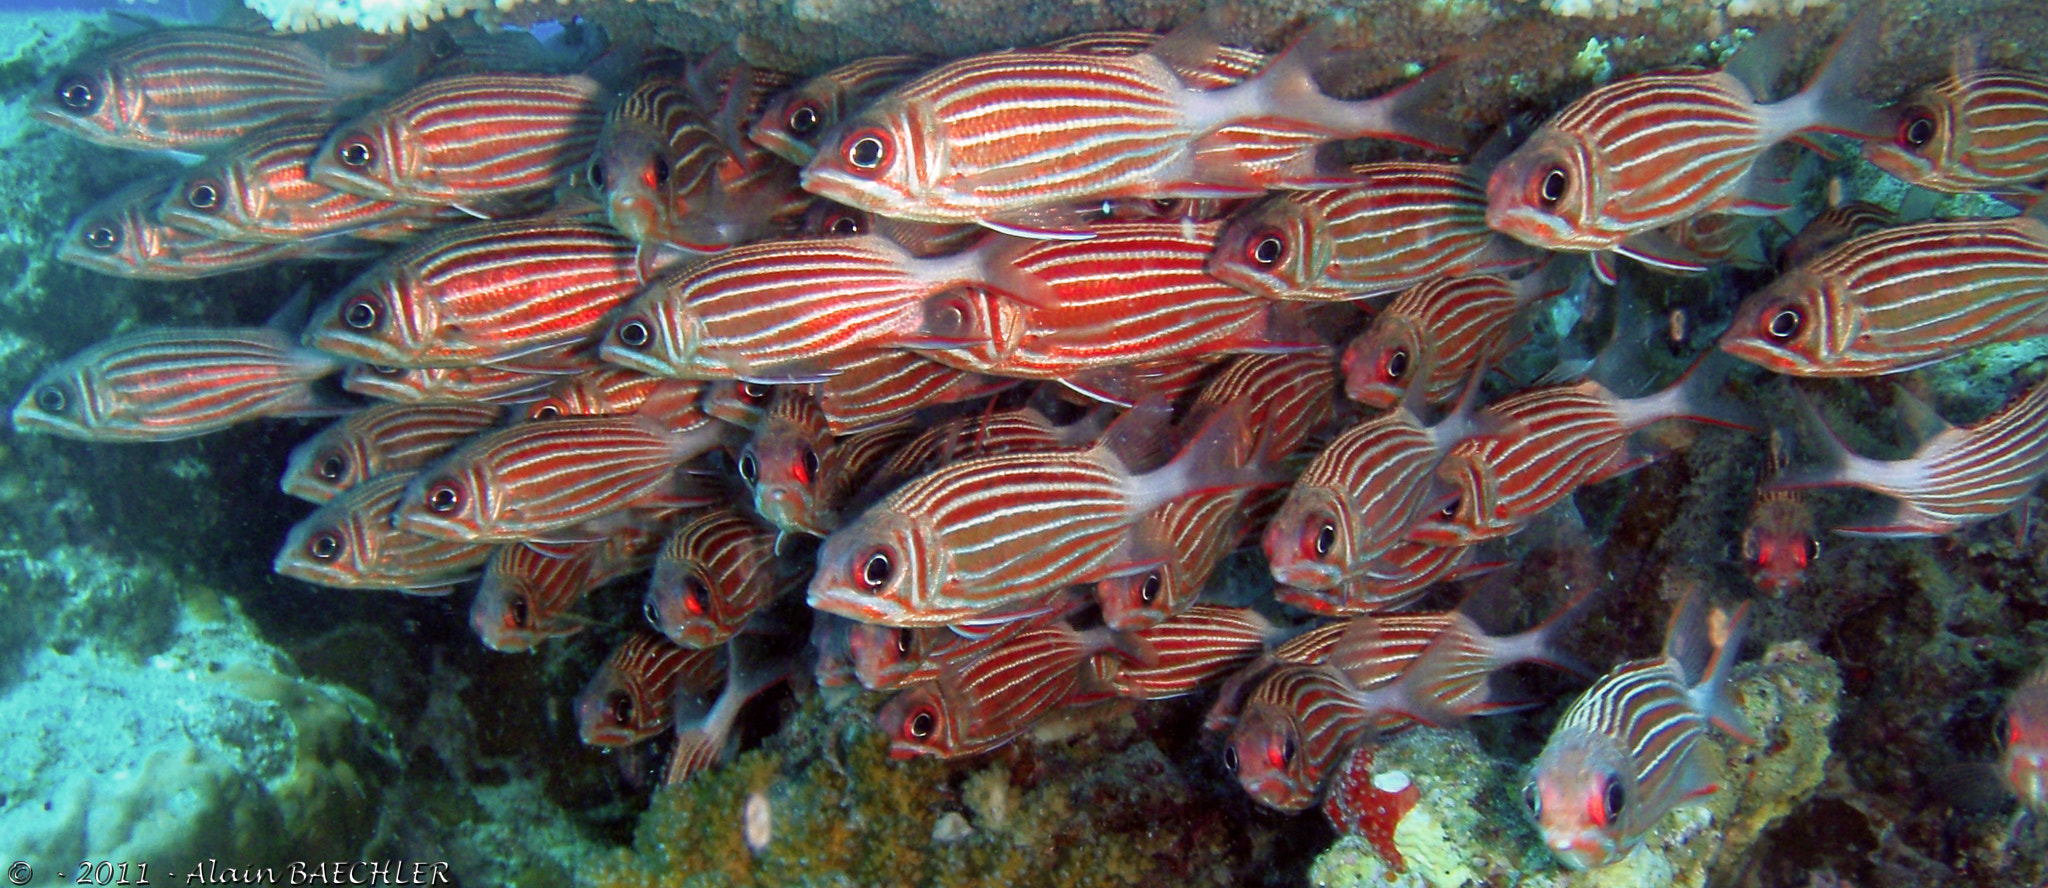 Photograph Crown Squirrelfish by Alain Baechler on 500px